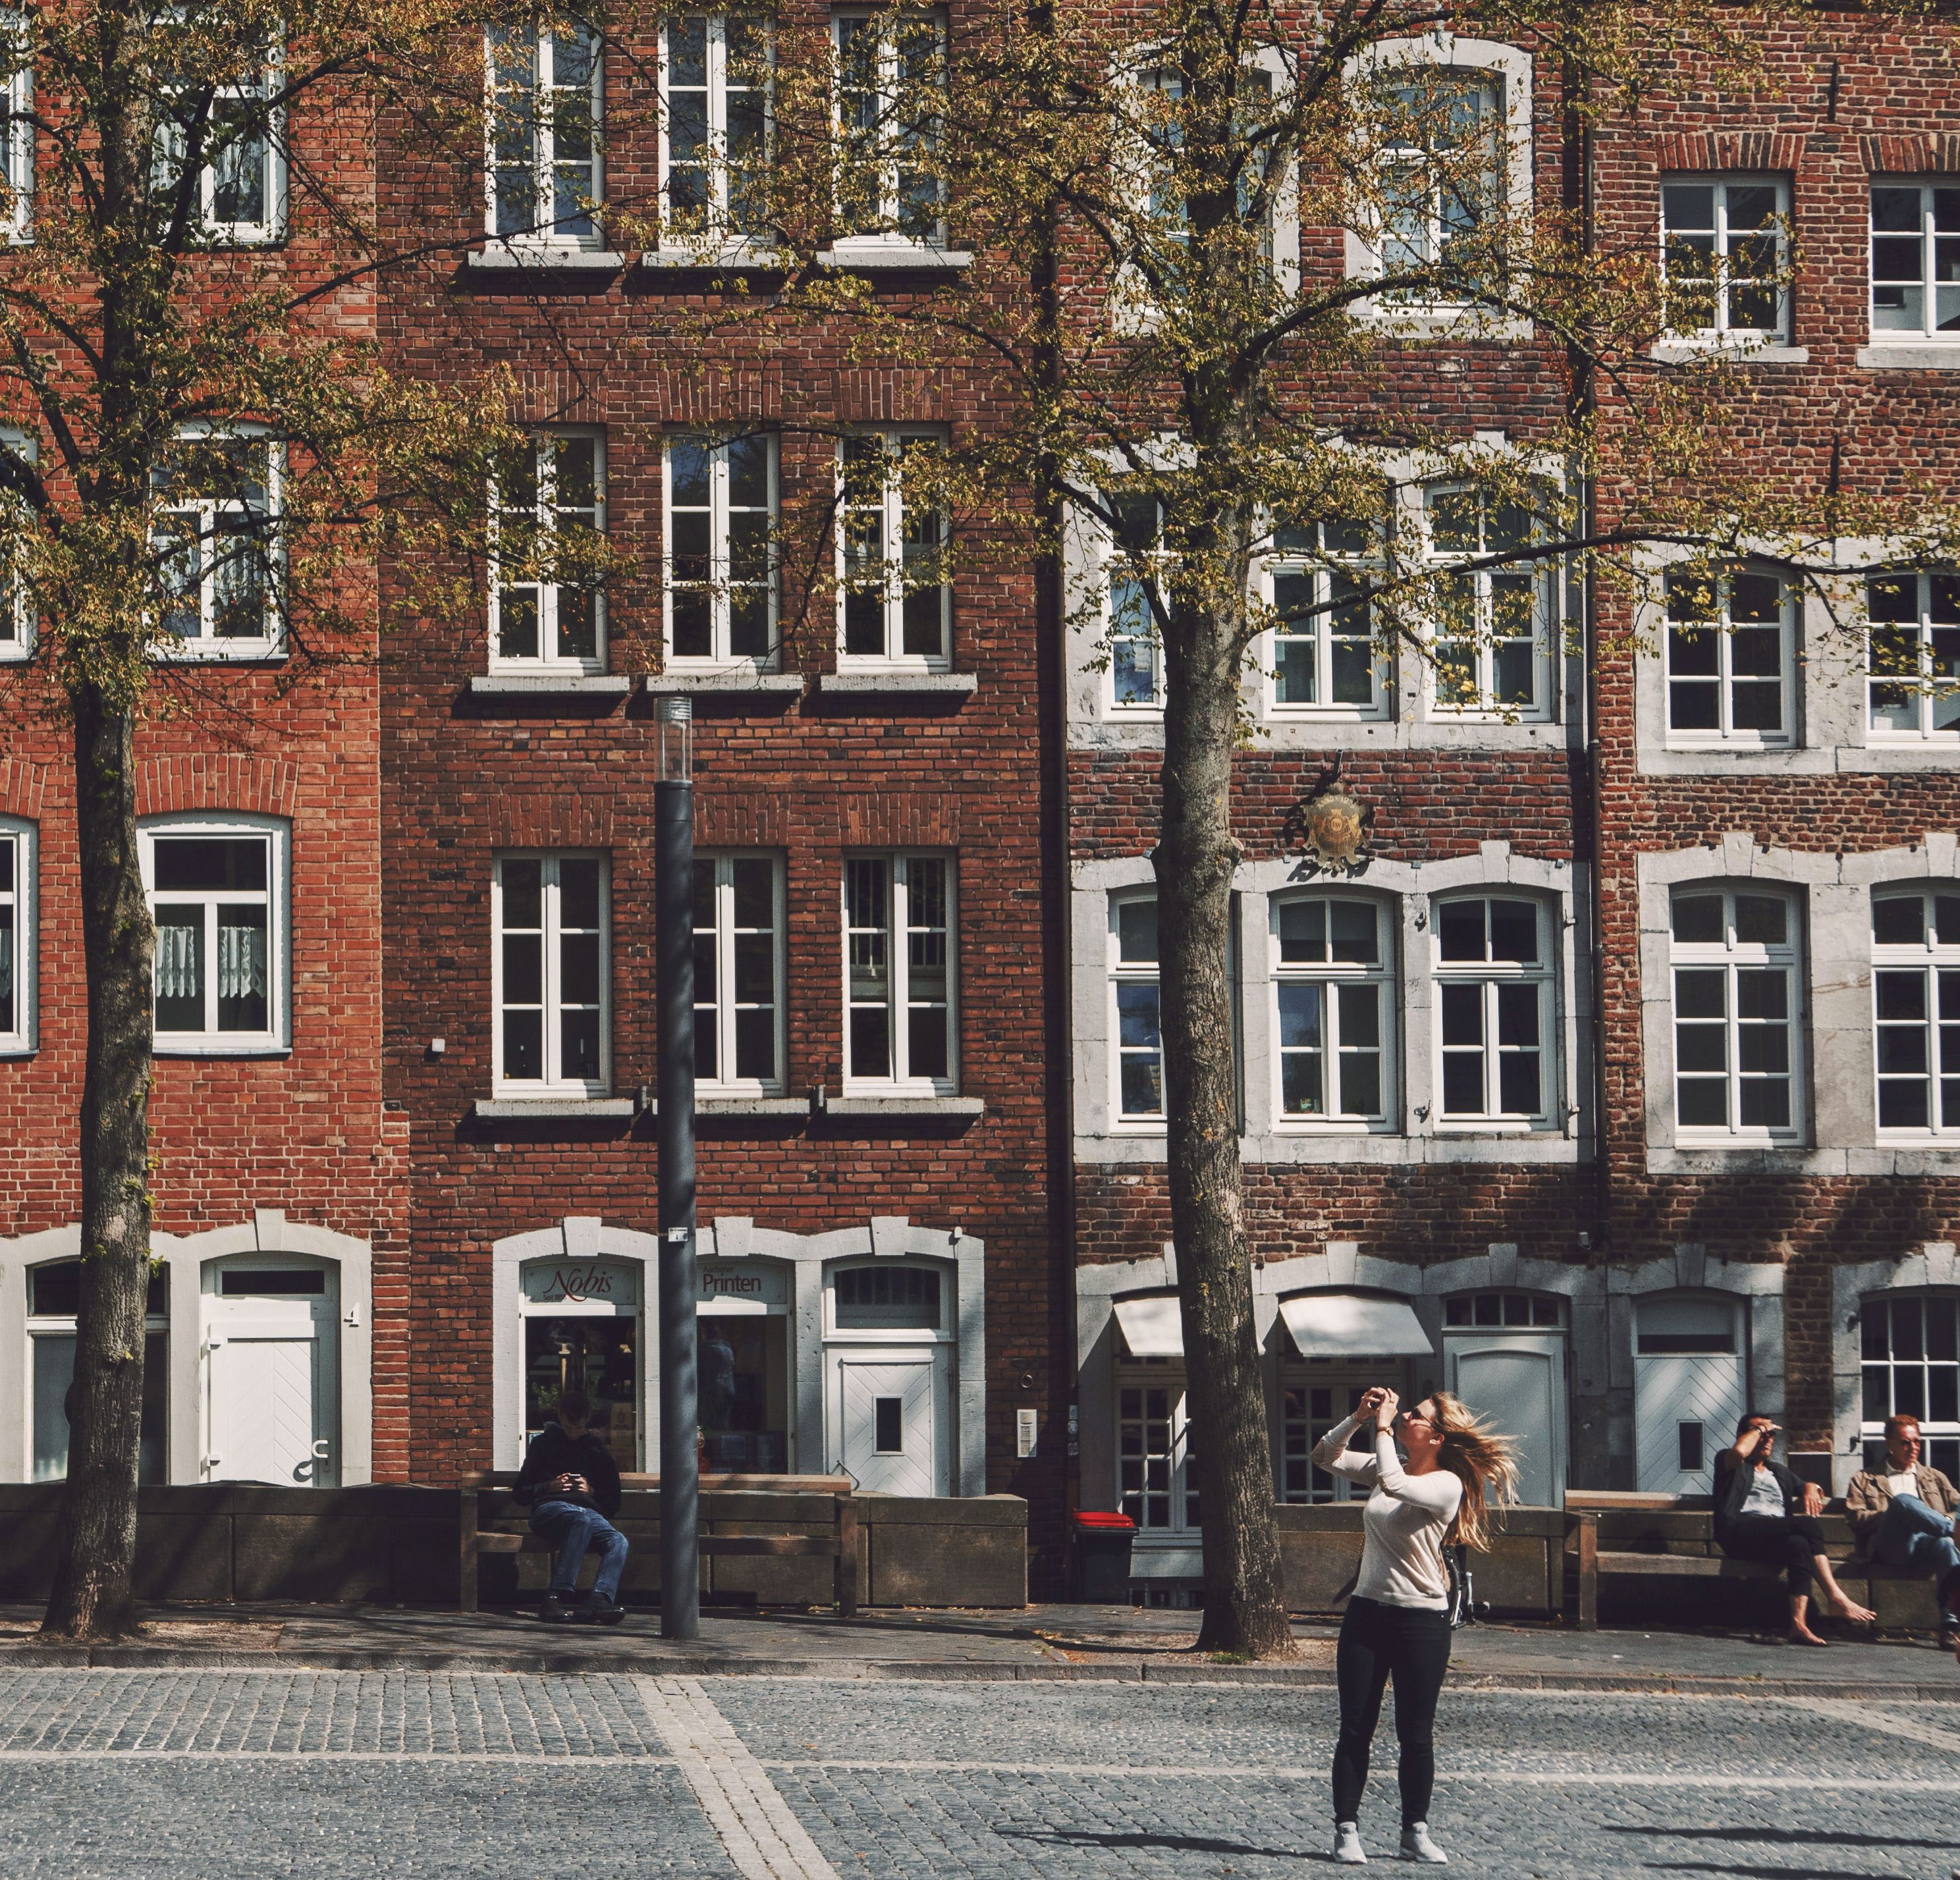 PEX Booking aachen student city scaled aspect ratio 1427 1369